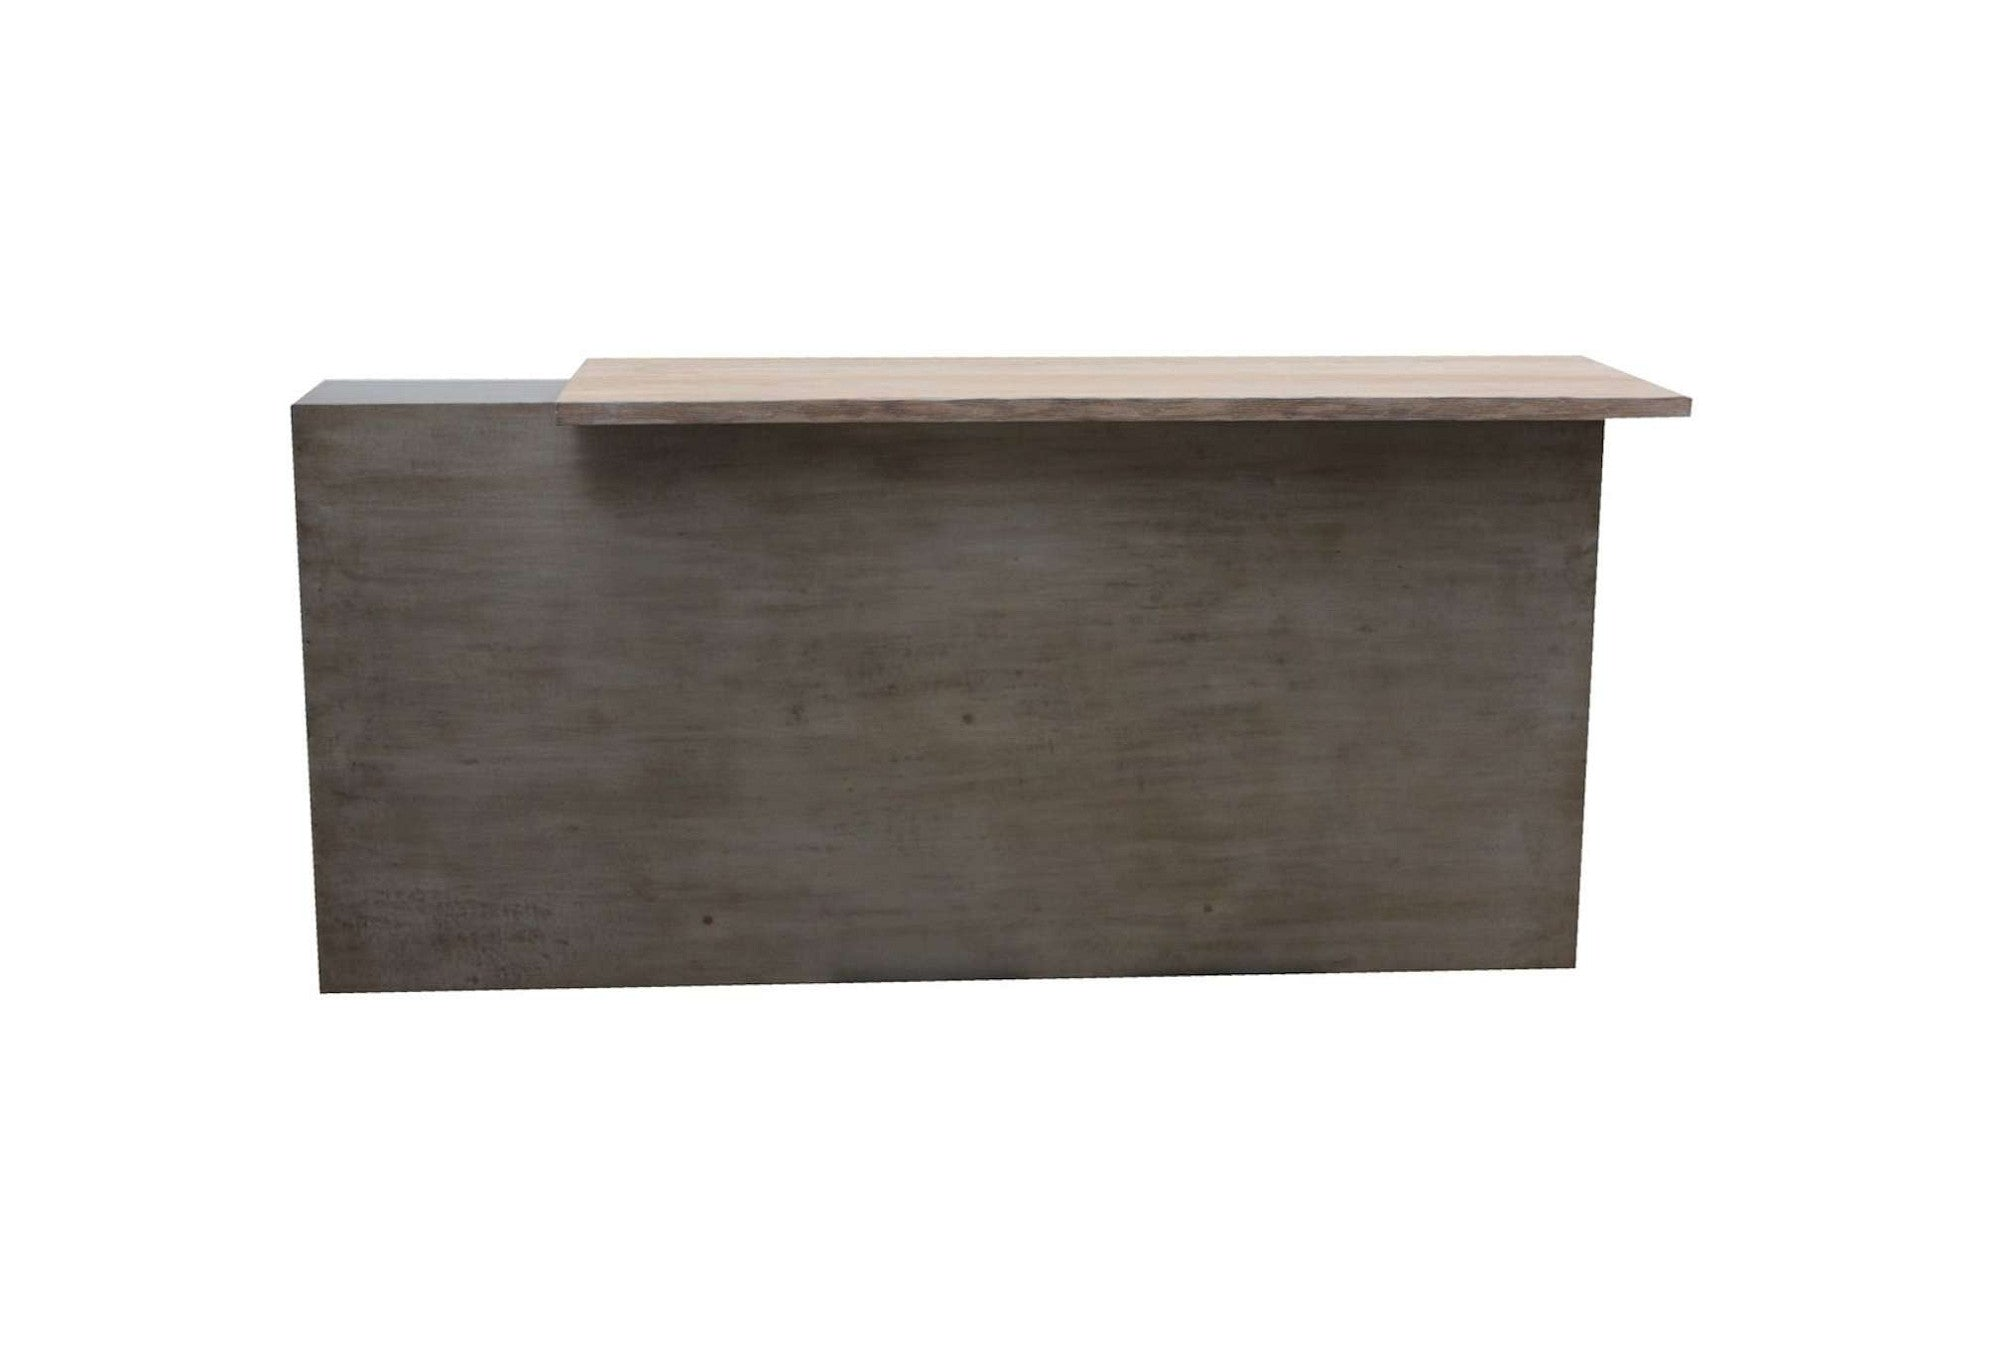 Custom Metal Reception Desk for a Yoga Studio